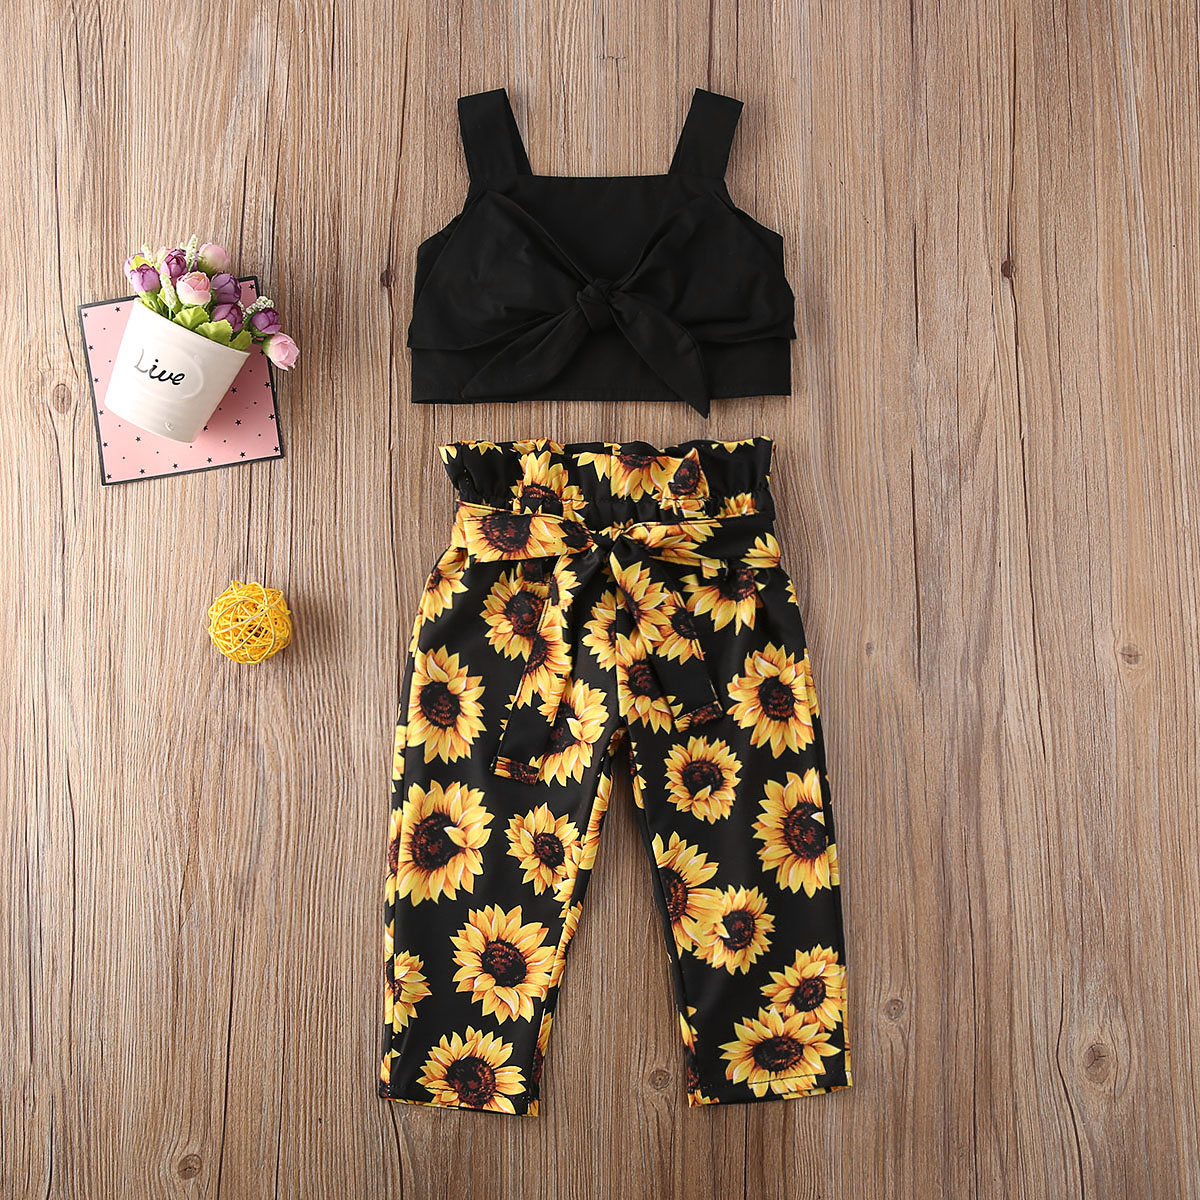 Emmababy Toddler Baby Girl Clothes Solid Color Sling Crop Tops Sunflower Print Long Pants 2Pcs Outfits Sunsuit Clothes Summer